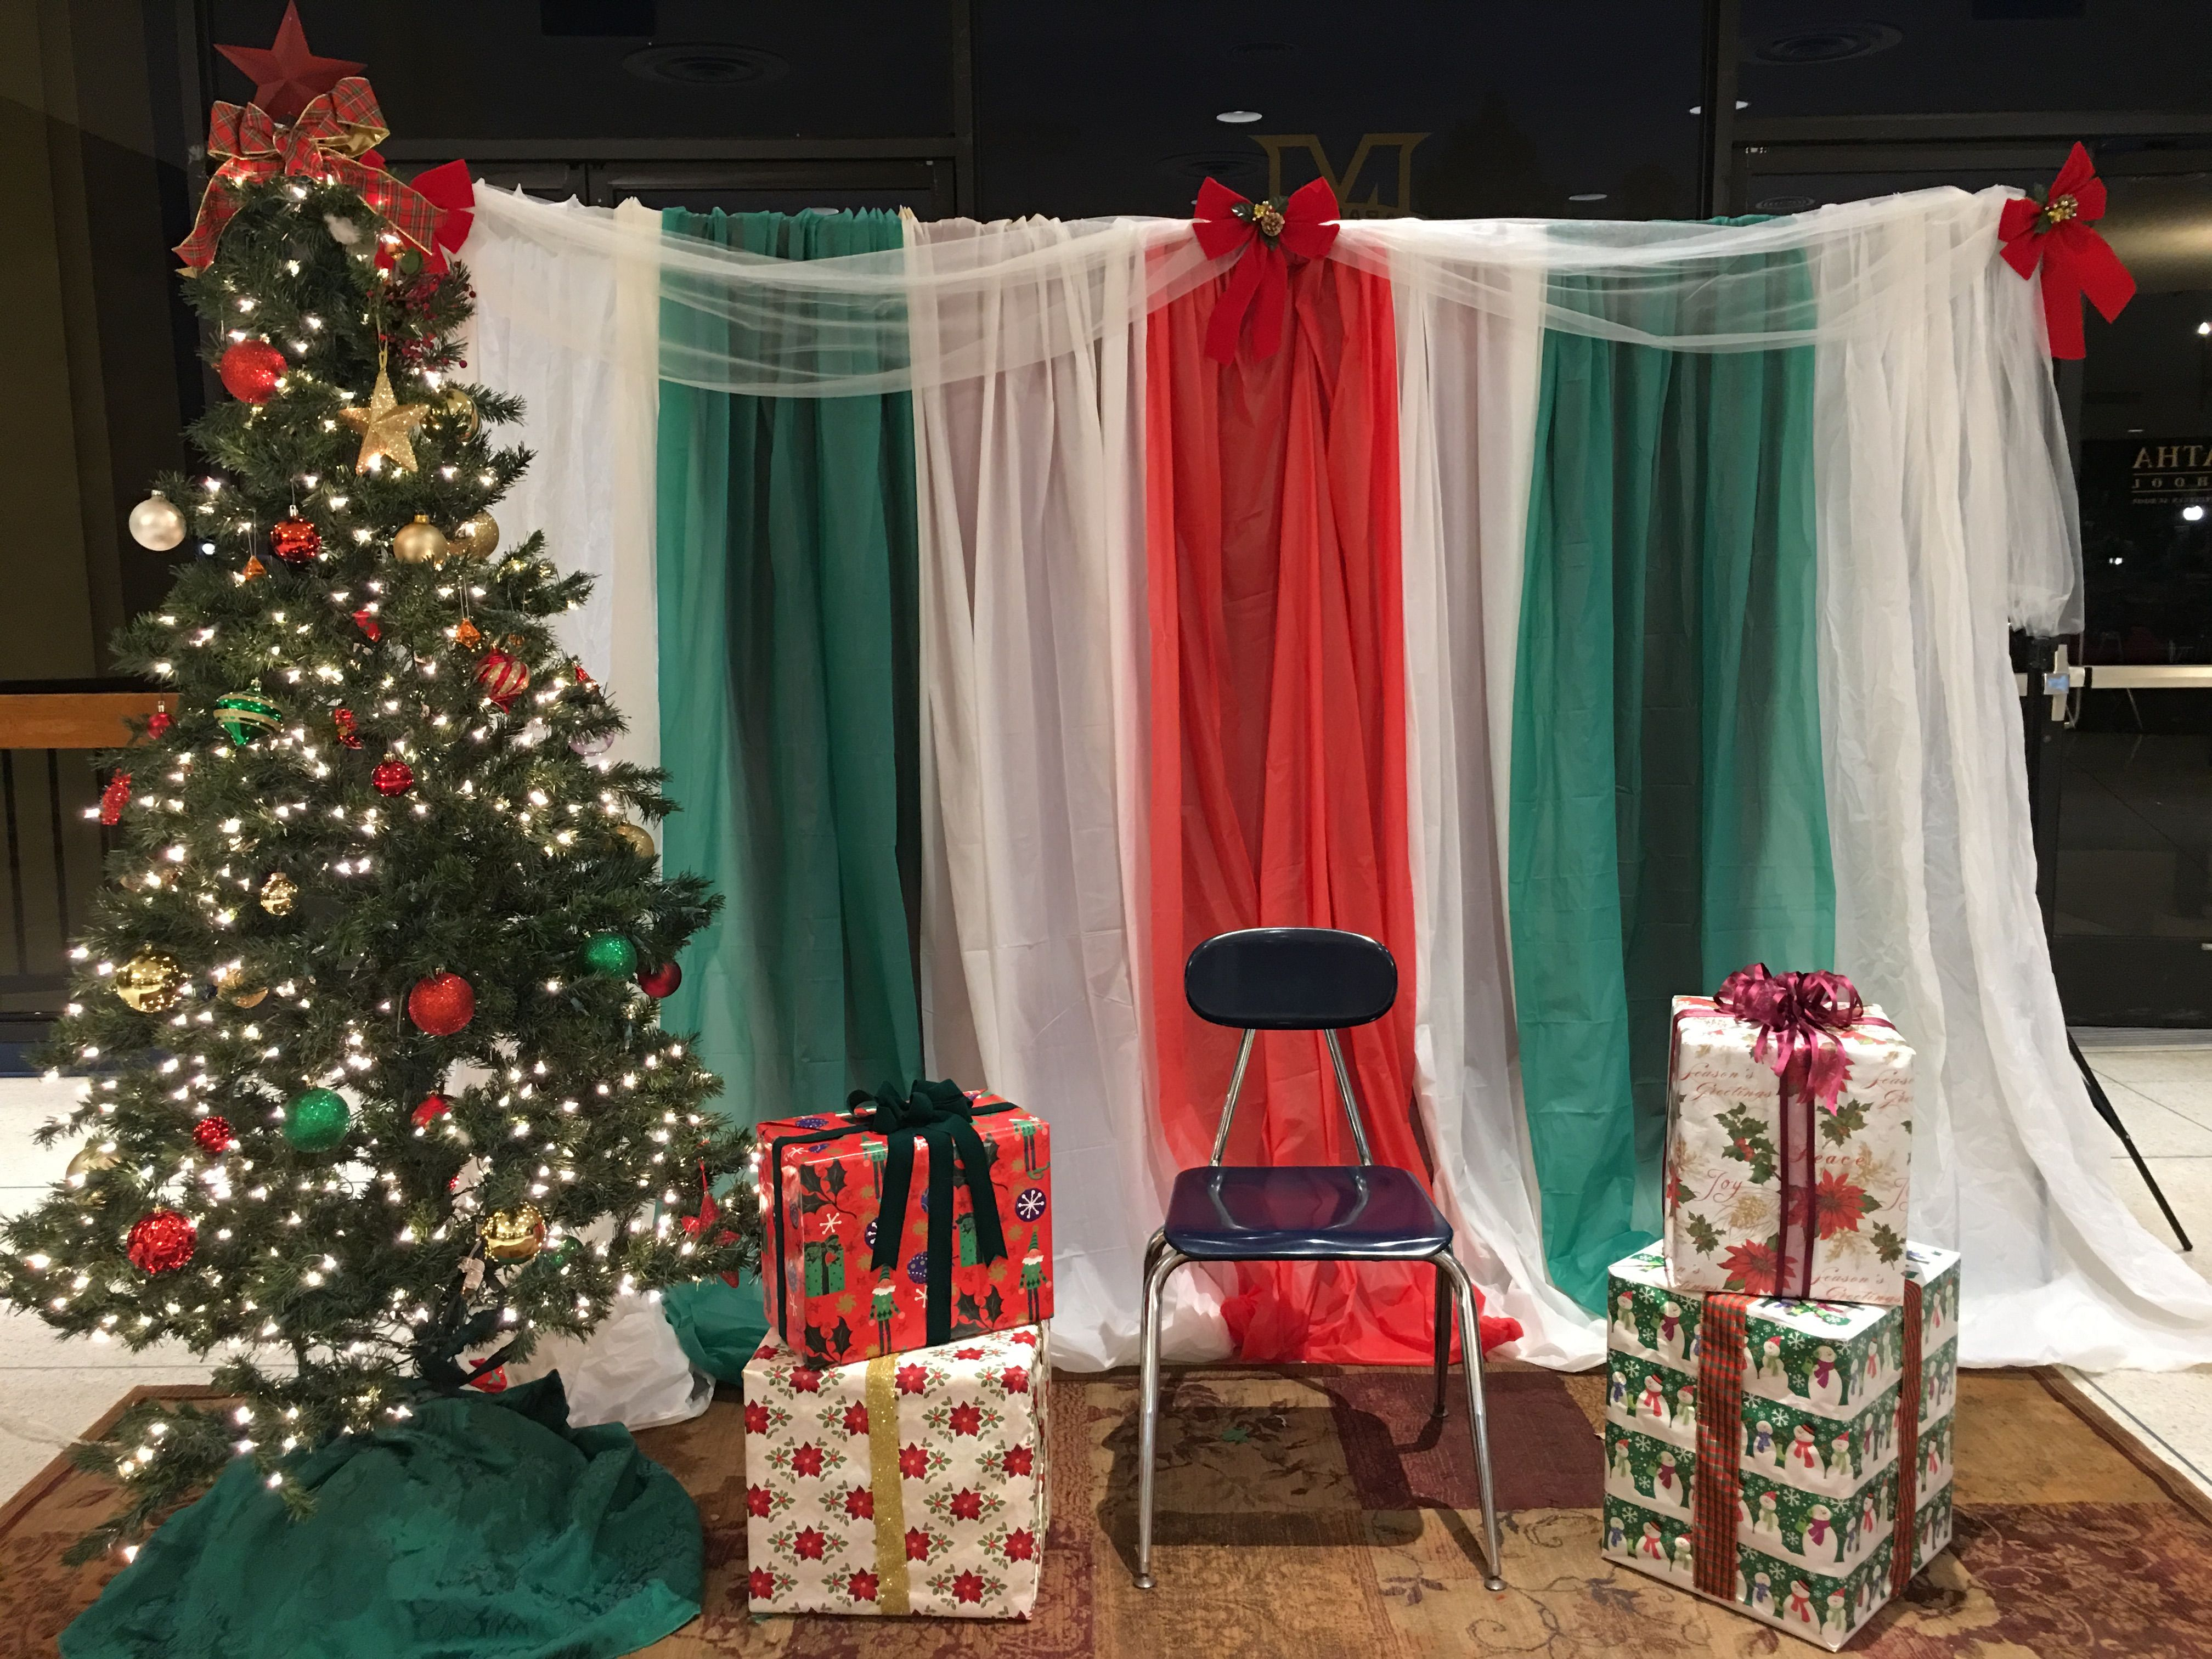 Christmas picture backdrop ideas